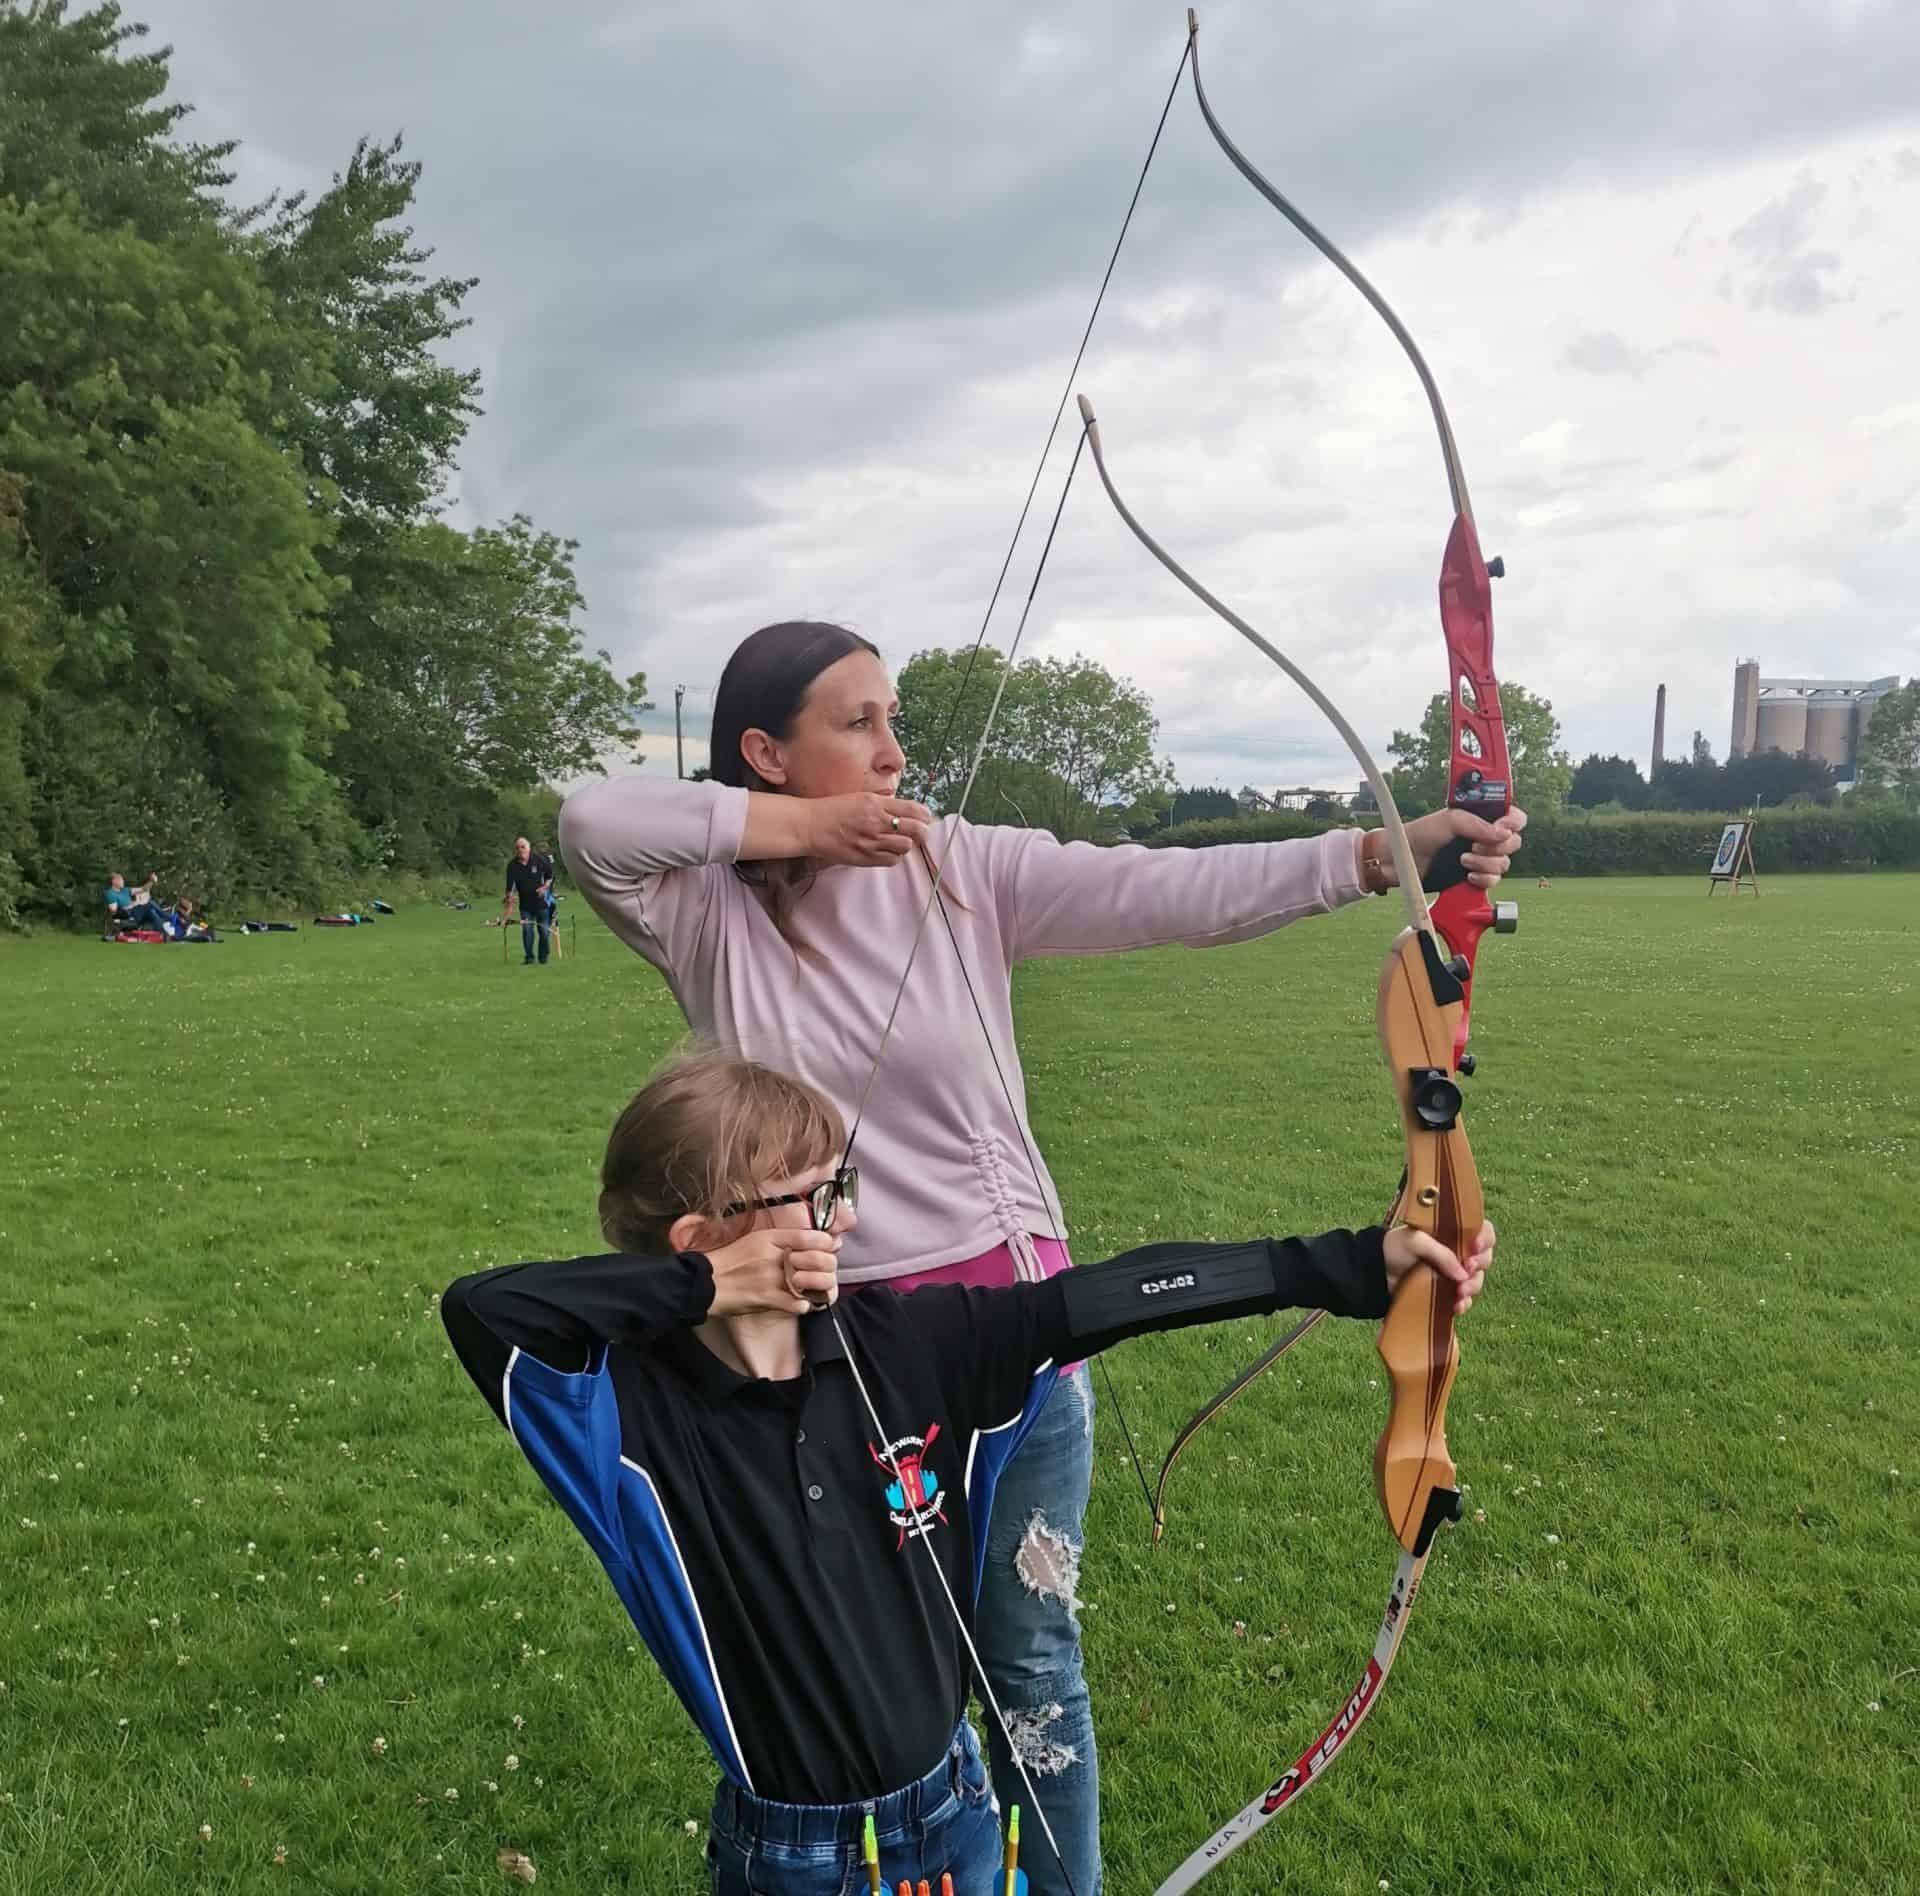 Mum and daughter on archery beginners course